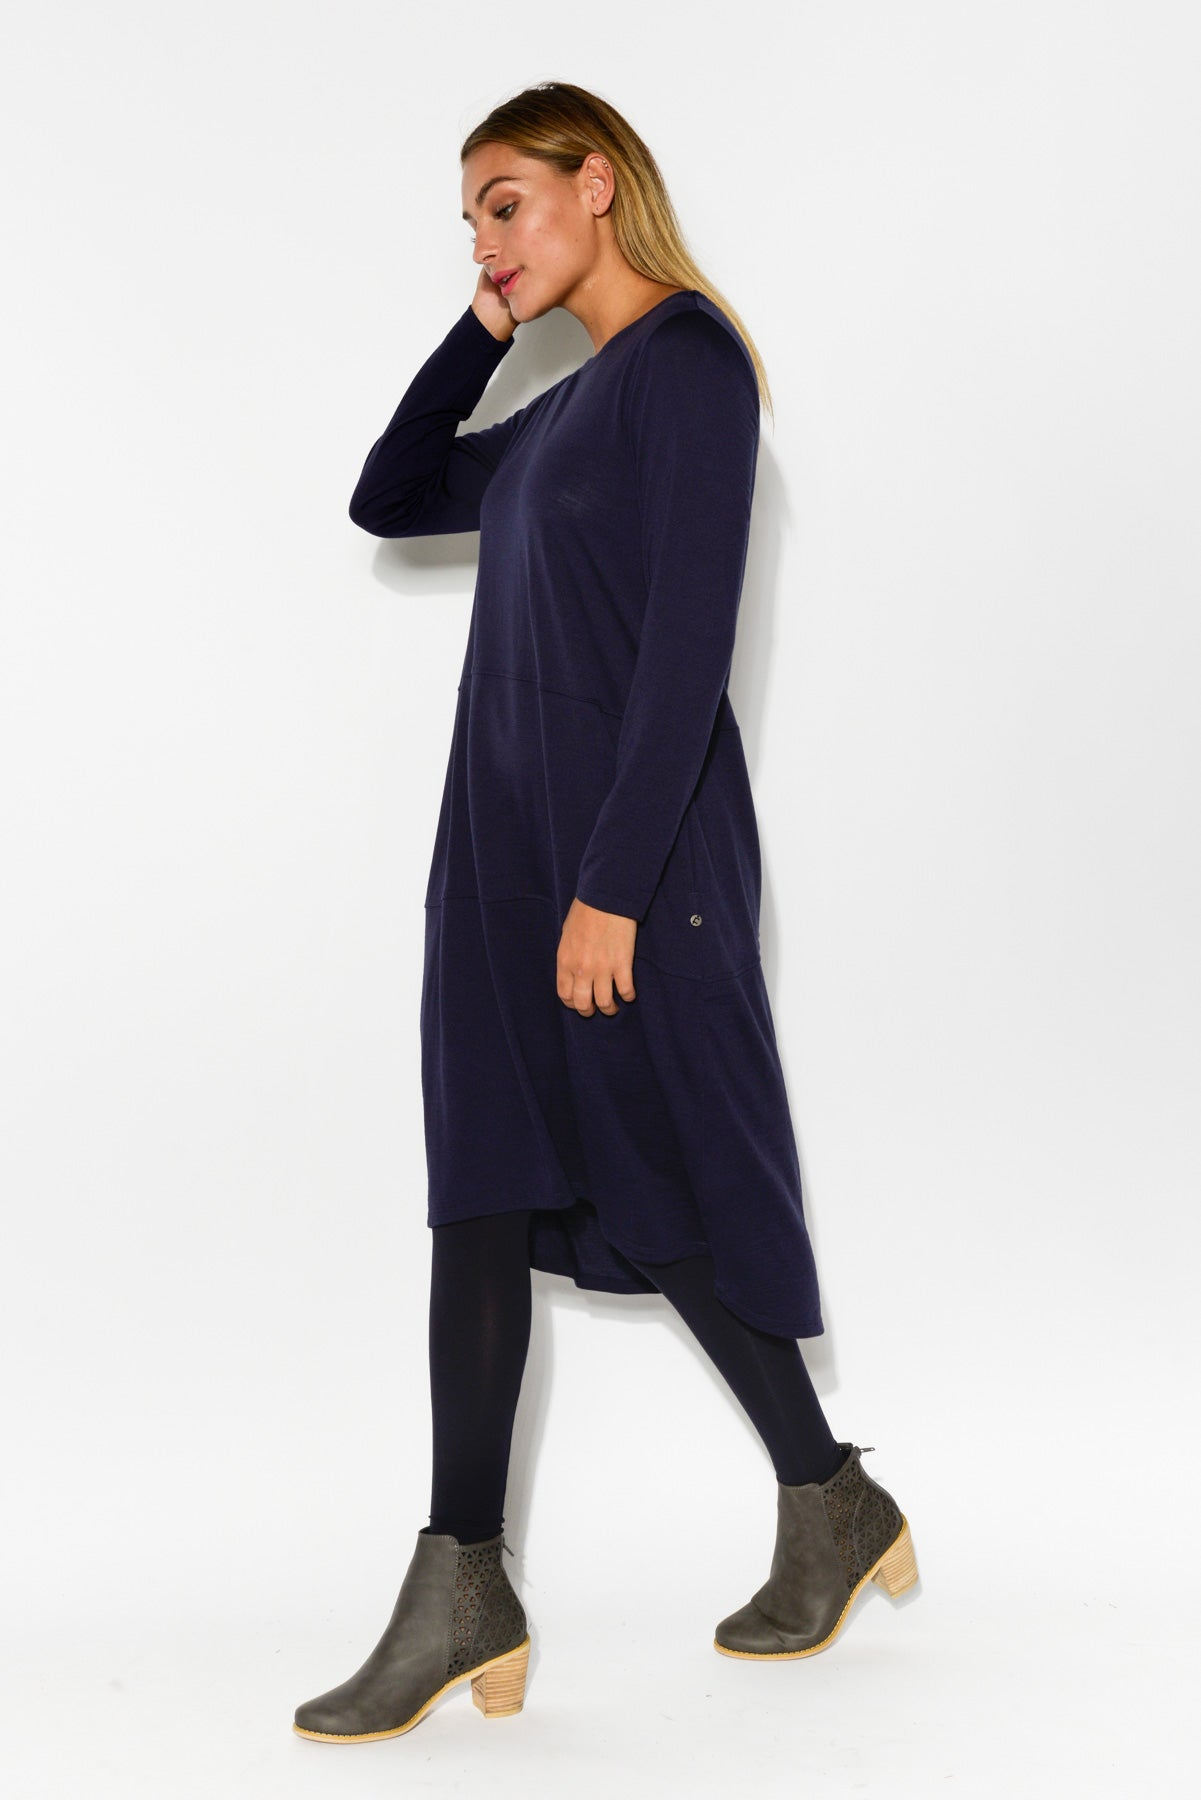 Elizabeth Navy Merino Wool Dress - Blue Bungalow